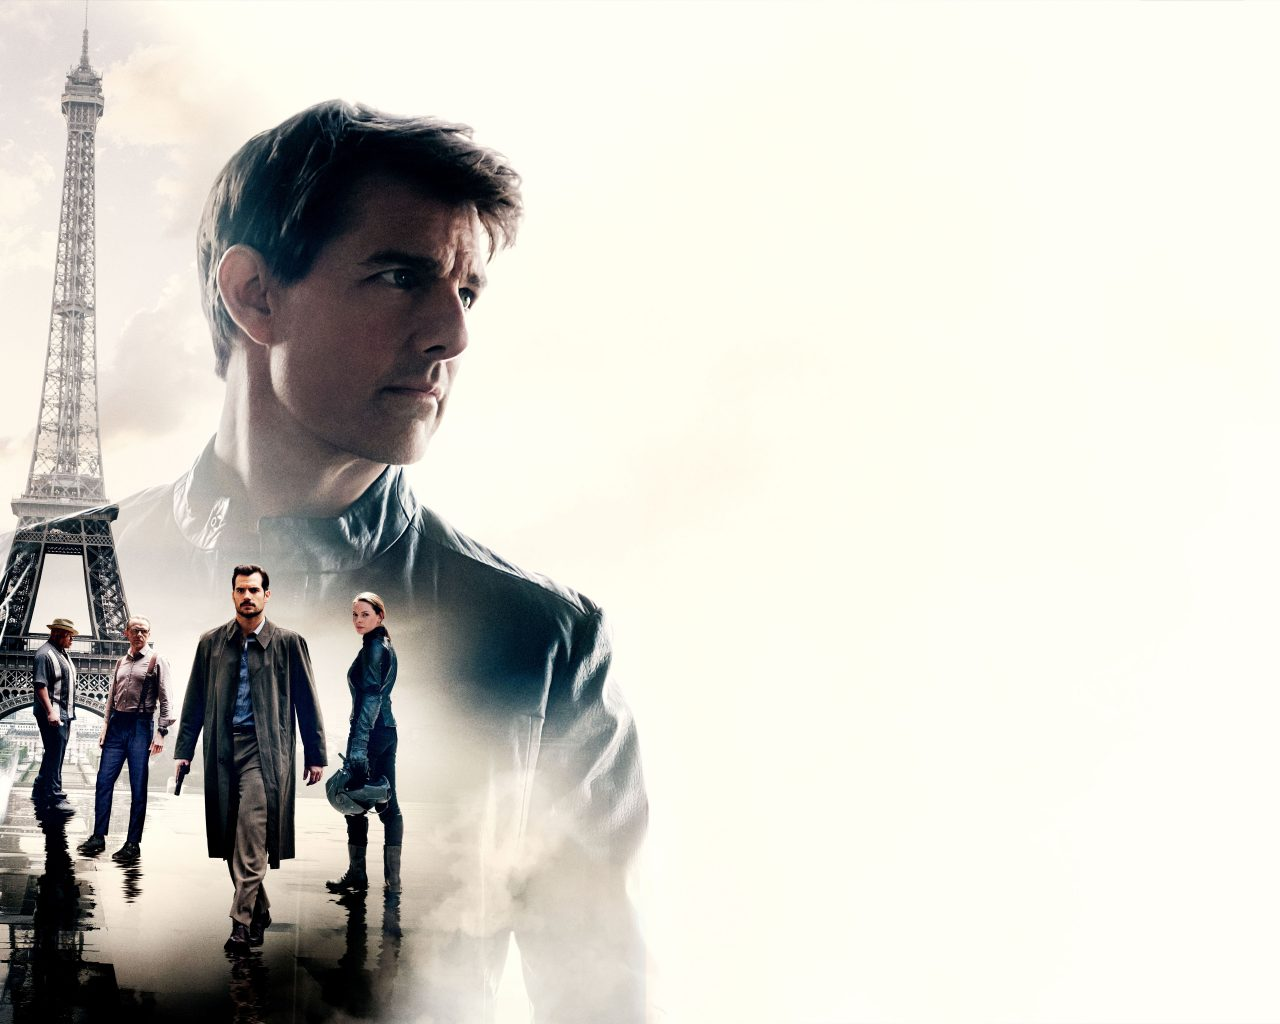 Free Download Mission Impossible Fallout Movie Cover 8k